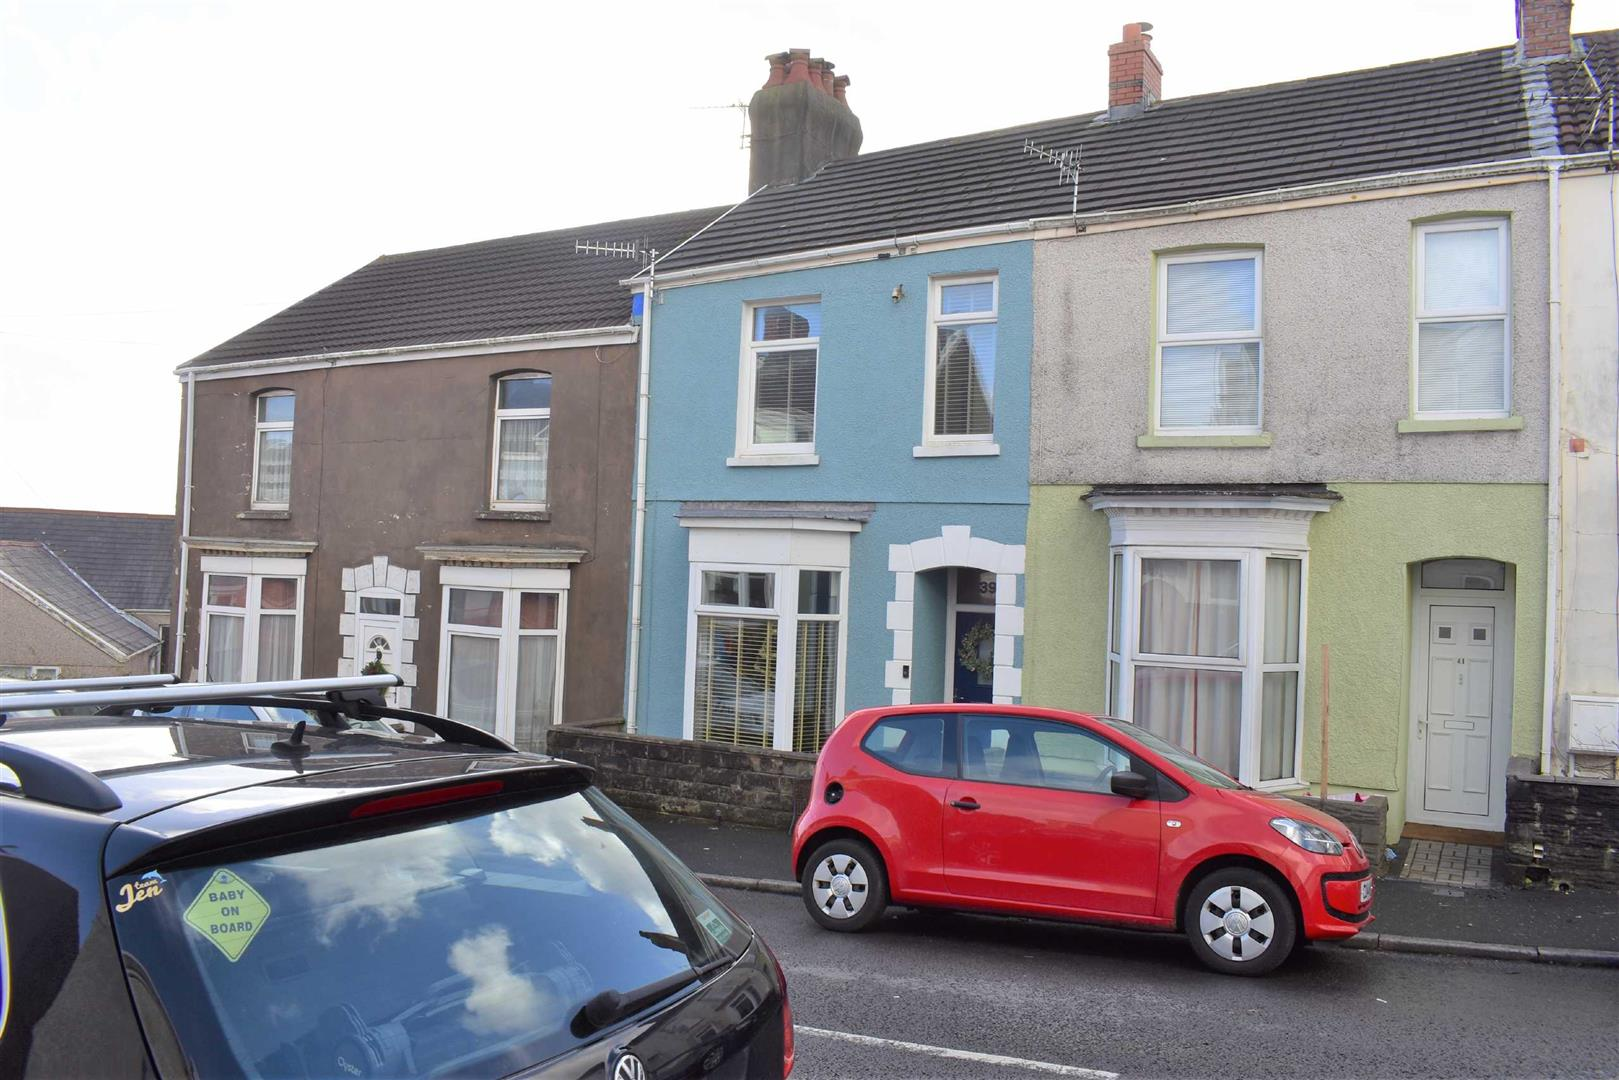 Hawthorne Avenue, Uplands, Swansea, SA2 0LY